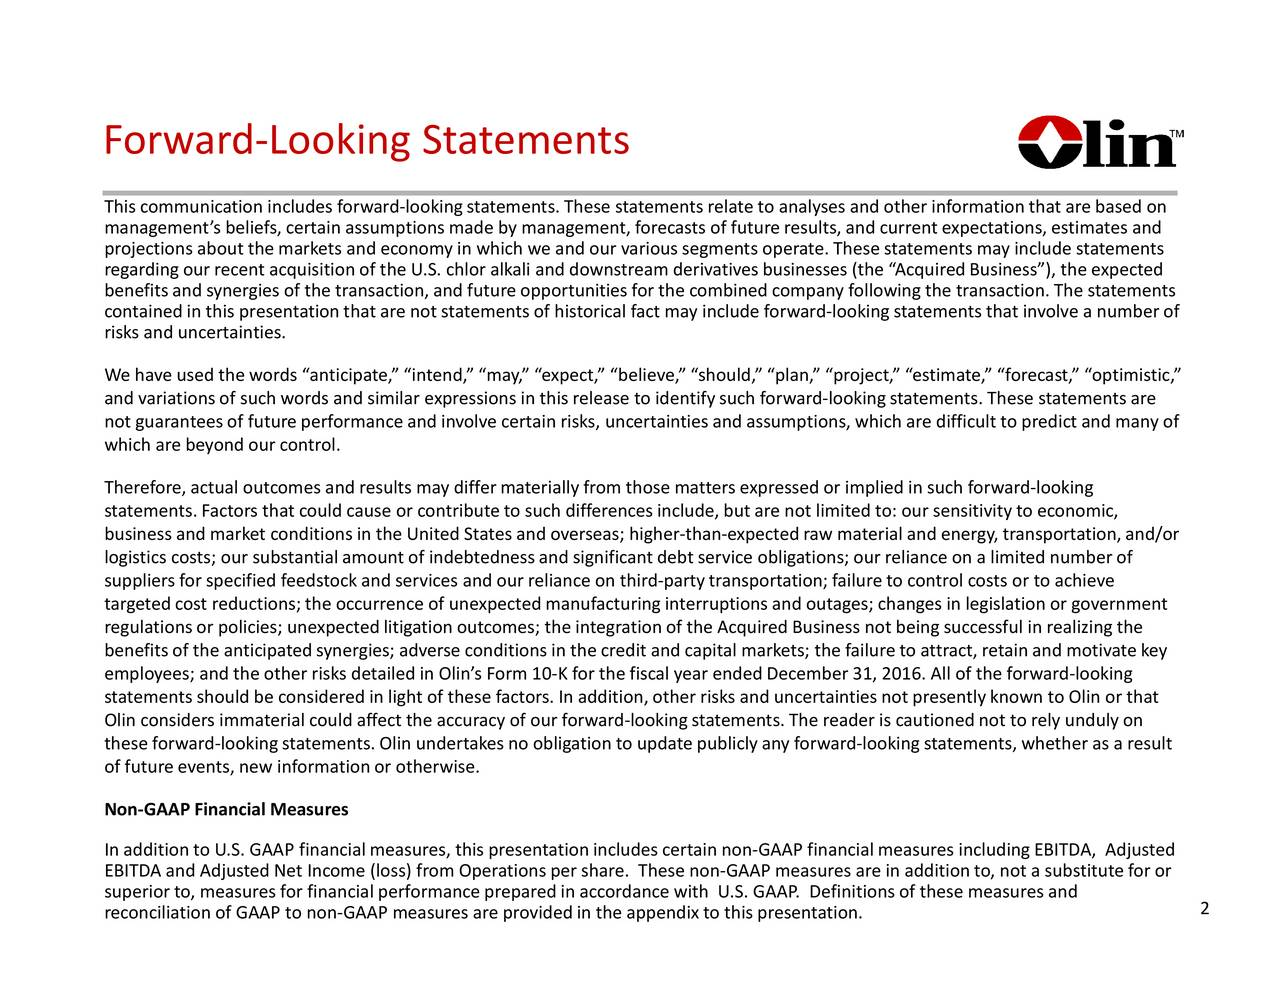 This communication includes forward-lookingstatements. These statements relate to analyses and other information that are based on managements beliefs, certain assumptions made by management, forecasts of future results, and current expectations, estimates and projections about the markets and economy in which we and our various segments operate. These statements may include statements regardingour recent acquisition of the U.S. chlor alkali and downstream derivatives businesses (the AcquiredBusiness), the expected benefitsand synergies of the transaction,and future opportunities for the combined company following the transaction.The statements contained in this presentationthat are not statements of historical fact may include forward-lookingstatements that involve a number of risks and uncertainties. We have used the words anticipate, intend, may, expect, believe, should, plan, project, estimate, forecast, optimistic, and variationsof such words and similar expressions in this release to identifysuch forward-lookingstatements. These statements are not guaranteesof future performance and involve certain risks, uncertainties and assumptions, which are difficult to predict and many of which are beyond our control. Therefore,actual outcomes and results may differmaterially from those matters expressed or implied in such forward-looking statements. Factors that could cause or contribute to such differences include, but are not limited to: our sensitivity to economic, business and market conditions in the United States and overseas; higher-than-expectedraw material and energy, transportation,and/or logistics costs; our substantial amount of indebtedness and significant debt service obligations; our reliance on a limited number of suppliers for specified feedstock and services and our reliance on third-partytransportation; failure to control costs or to achieve targeted cost reductions; the occurrence of unexpectedmanufacturinginterruptions and outages; changes in legisl